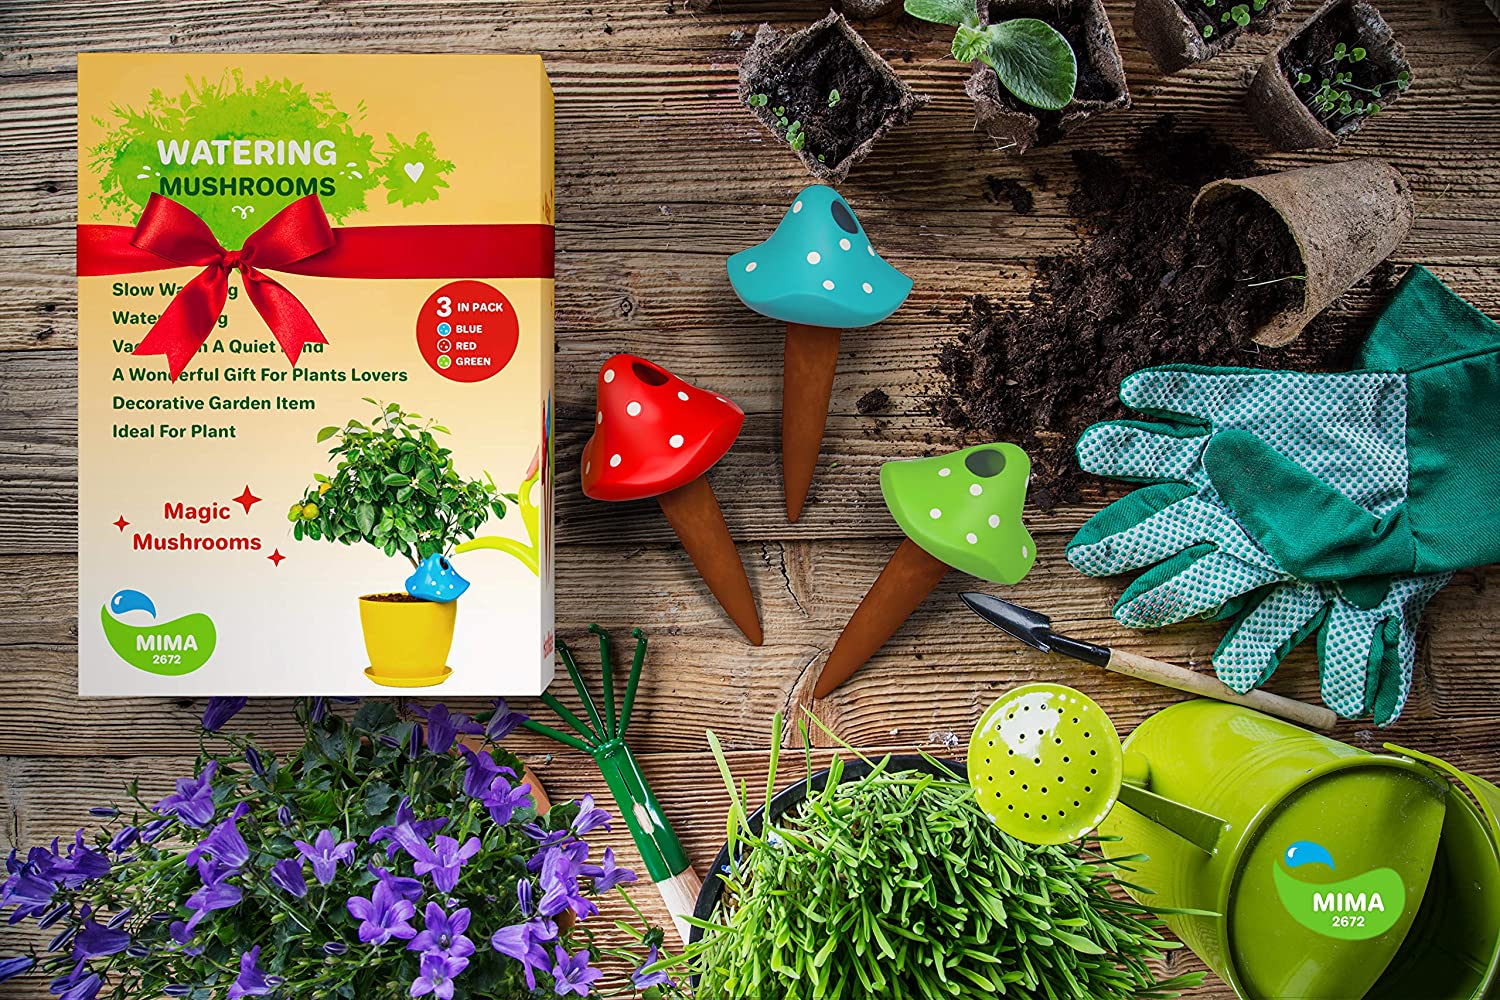 Outdoor Garden 3 Self Watering System Spikes Automatic Plant Waterer Irrigation Drippers Hanging Pots Plant Watering Wands Keep Indoor Plants Self Watering Planter Mushroom Terracotta Watering Globes Mimbarschool Com Ng